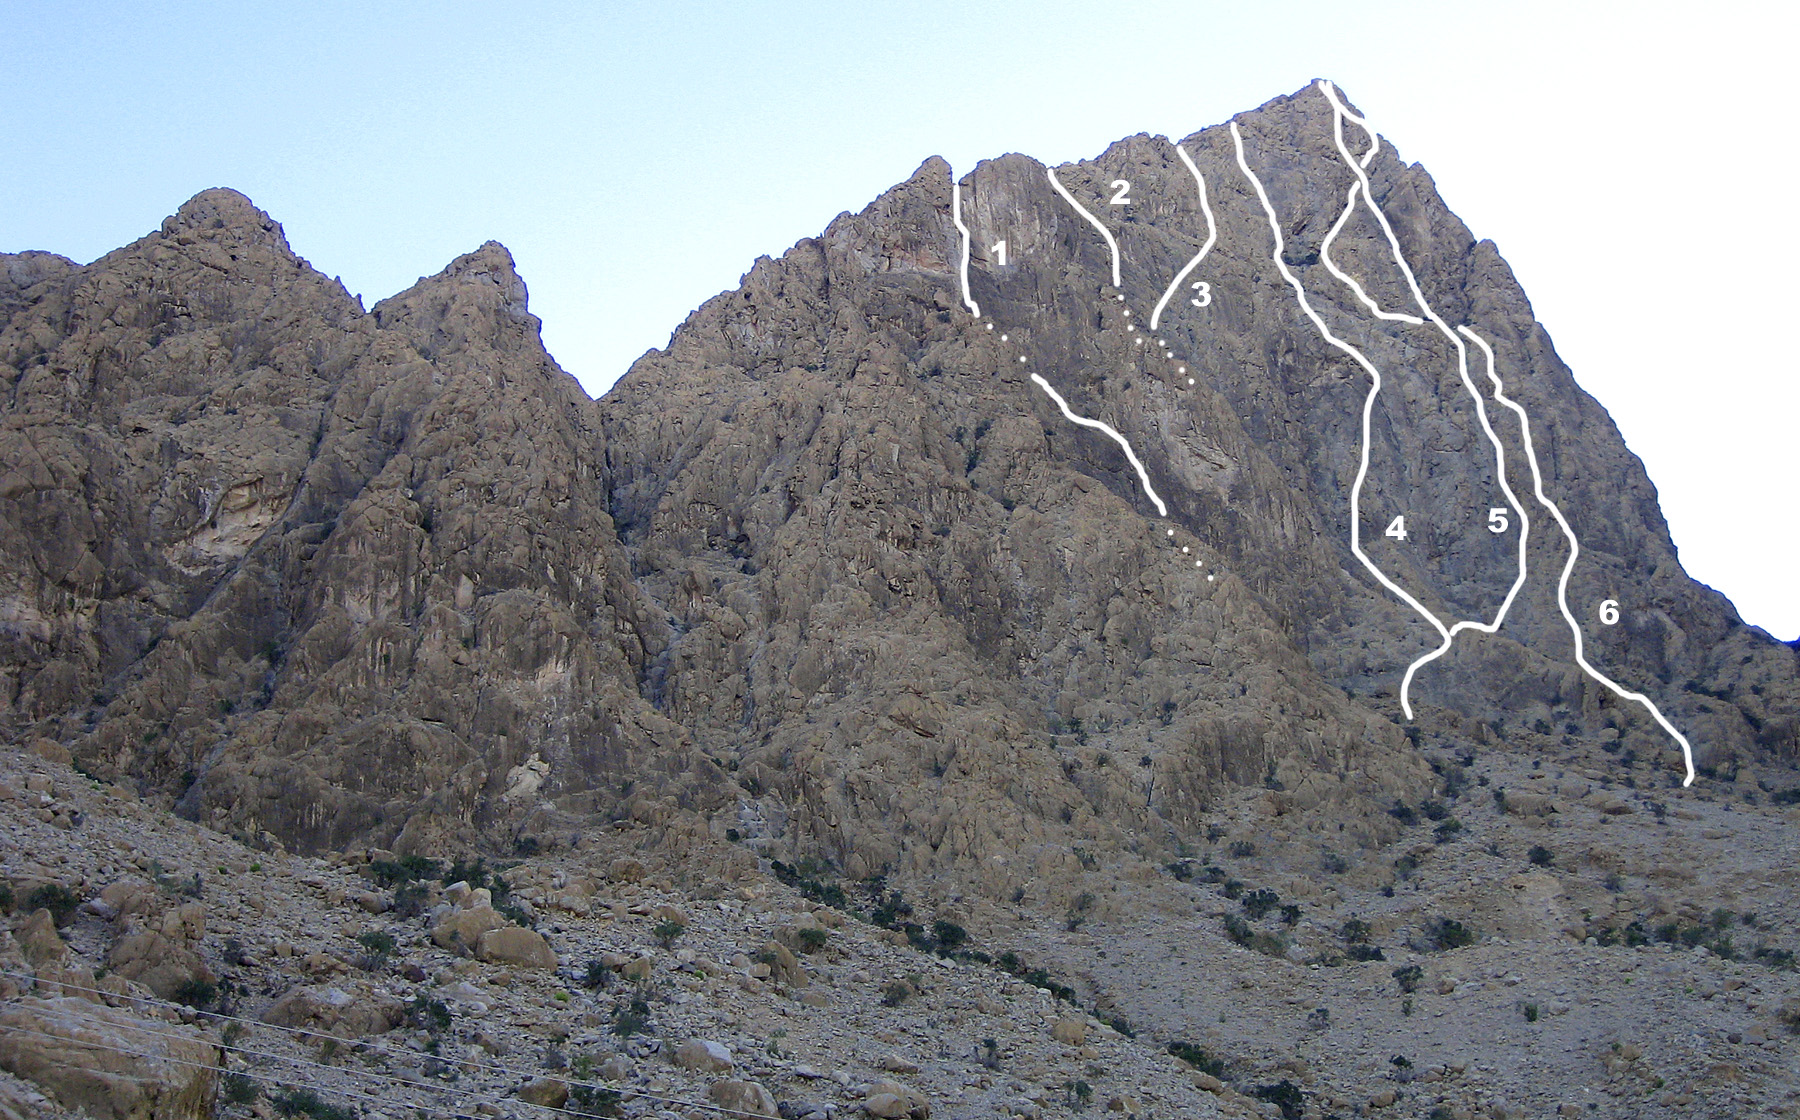 North face of Jabal Asala with approximate lines of a selection of routes: (1) Omanic (UIAA VI+, Brachmayer-Precht, 2002). (2) Route 1 (British VS 4b/c, Davison, solo, 2002), (3) Route 2 (British HS 4b, Davison, solo, 2002), (4) Ramadan for Bolts (UIAA VI+, Brachmayer-Eisendle, 2002), (5) Rock Fascination, and (6) Lulu.